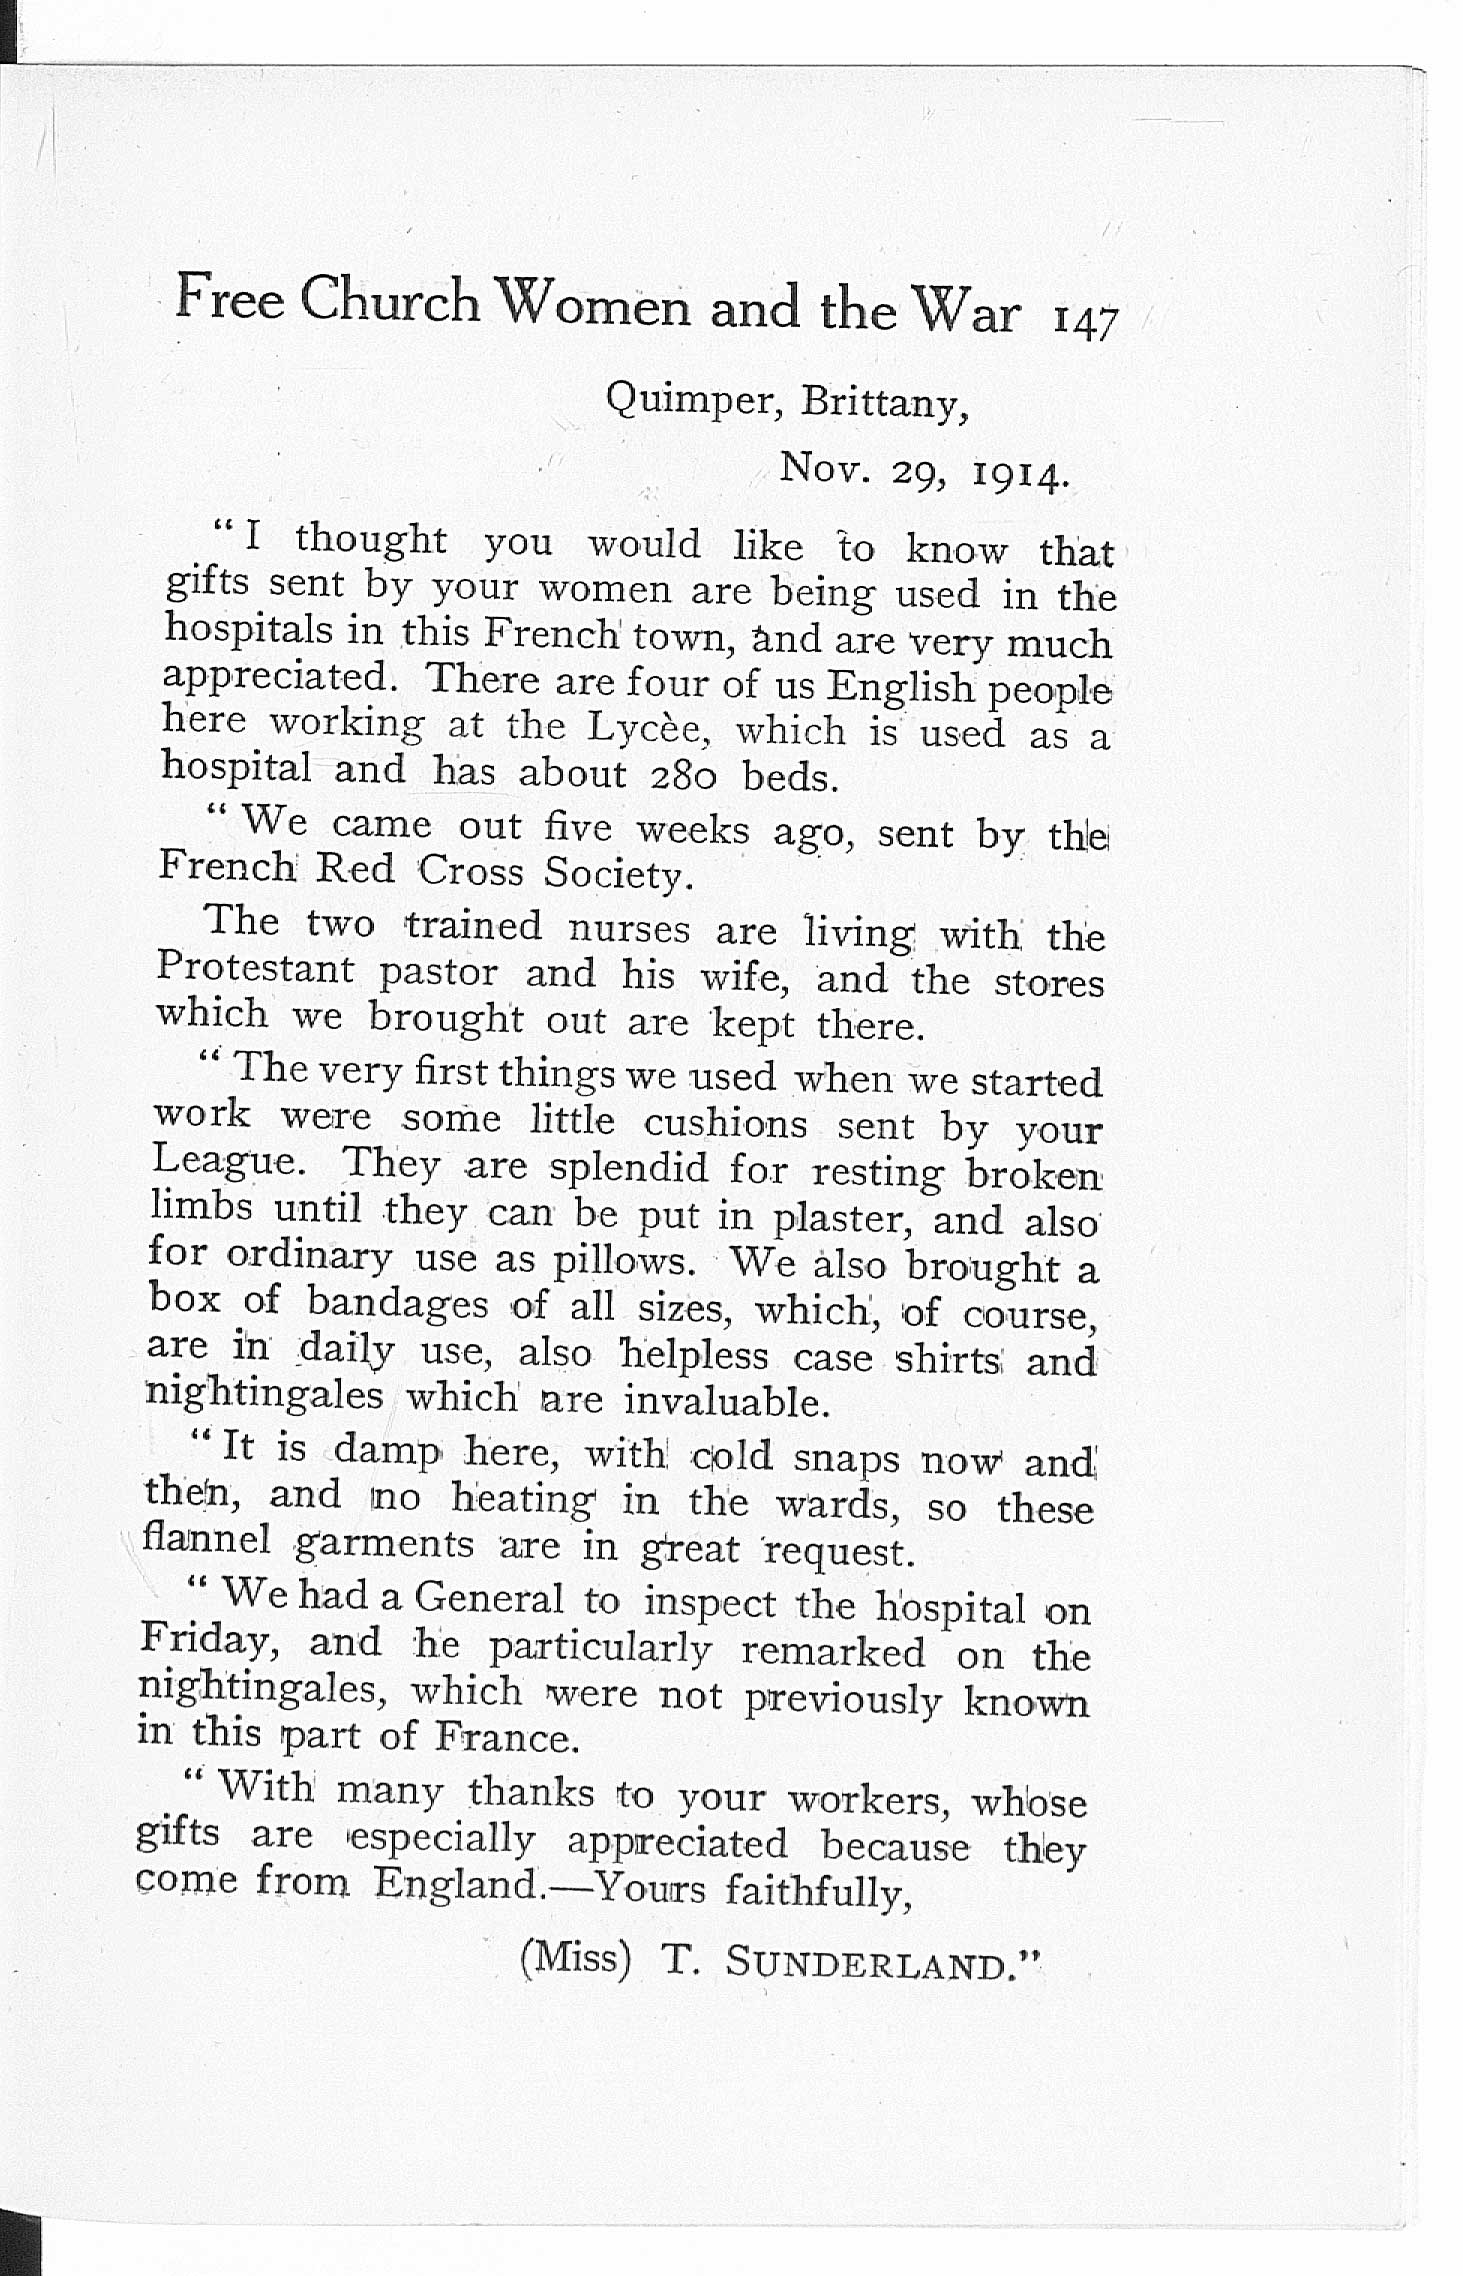 Letter from a nurse working in Brittany in 1914. The letter was reprinted in 'Some Chaplains in Khaki', a book by Reverend Frederic Chambers Spurr.